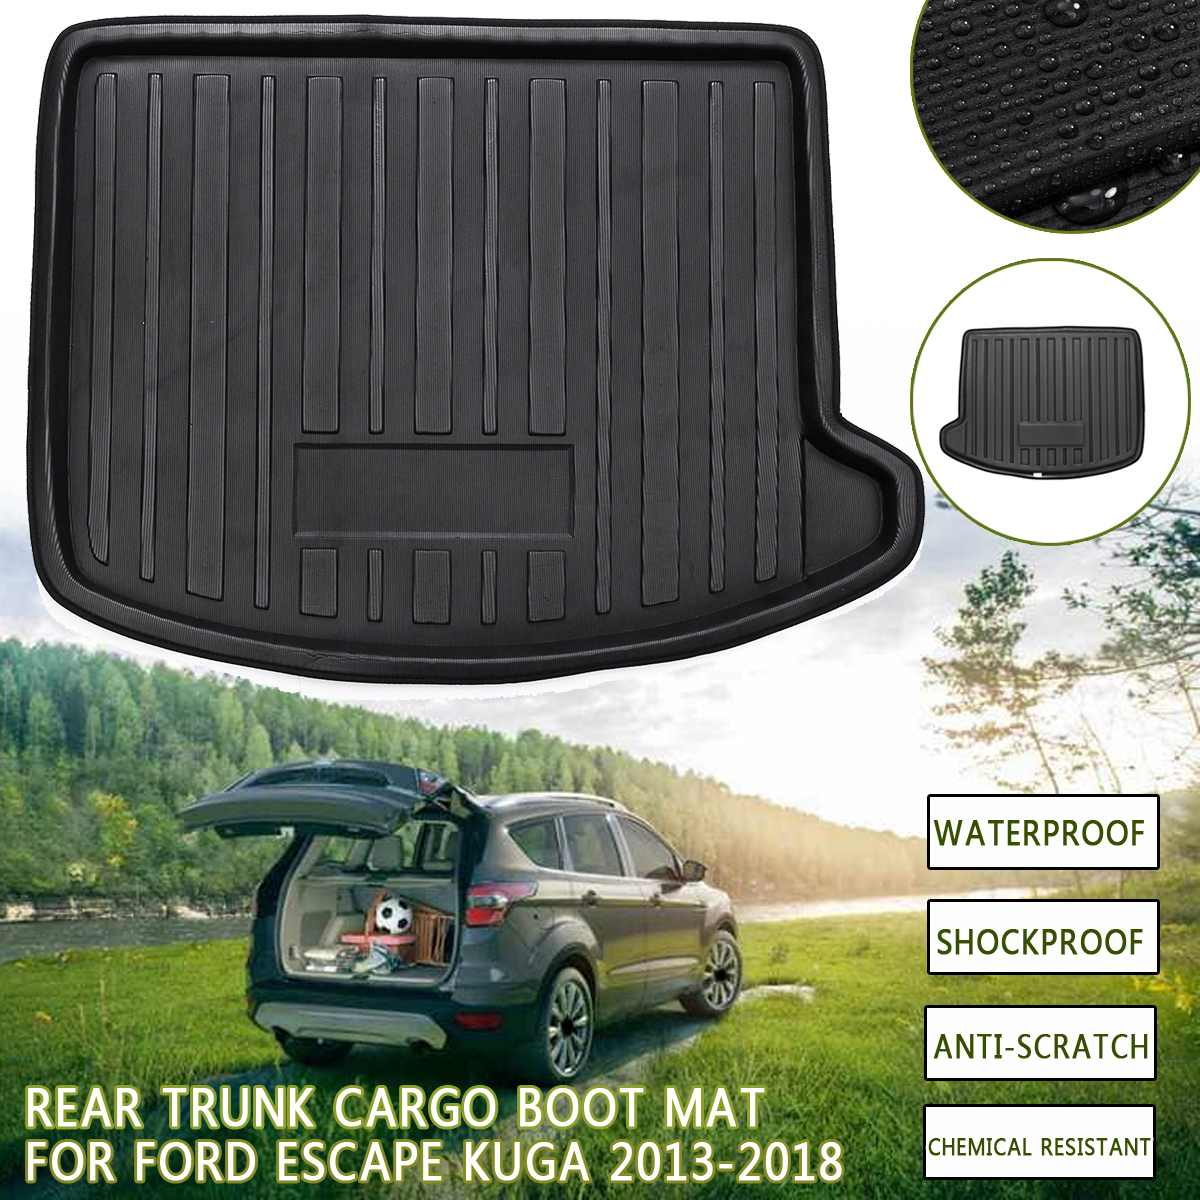 1 Pcs PE Rear Trunk For Ford Escape Kuga 2013 2014 2015 2016 2017 2018 Cargo Liner Floor Tray Carpet Boot Mat Mud Kick Overlay